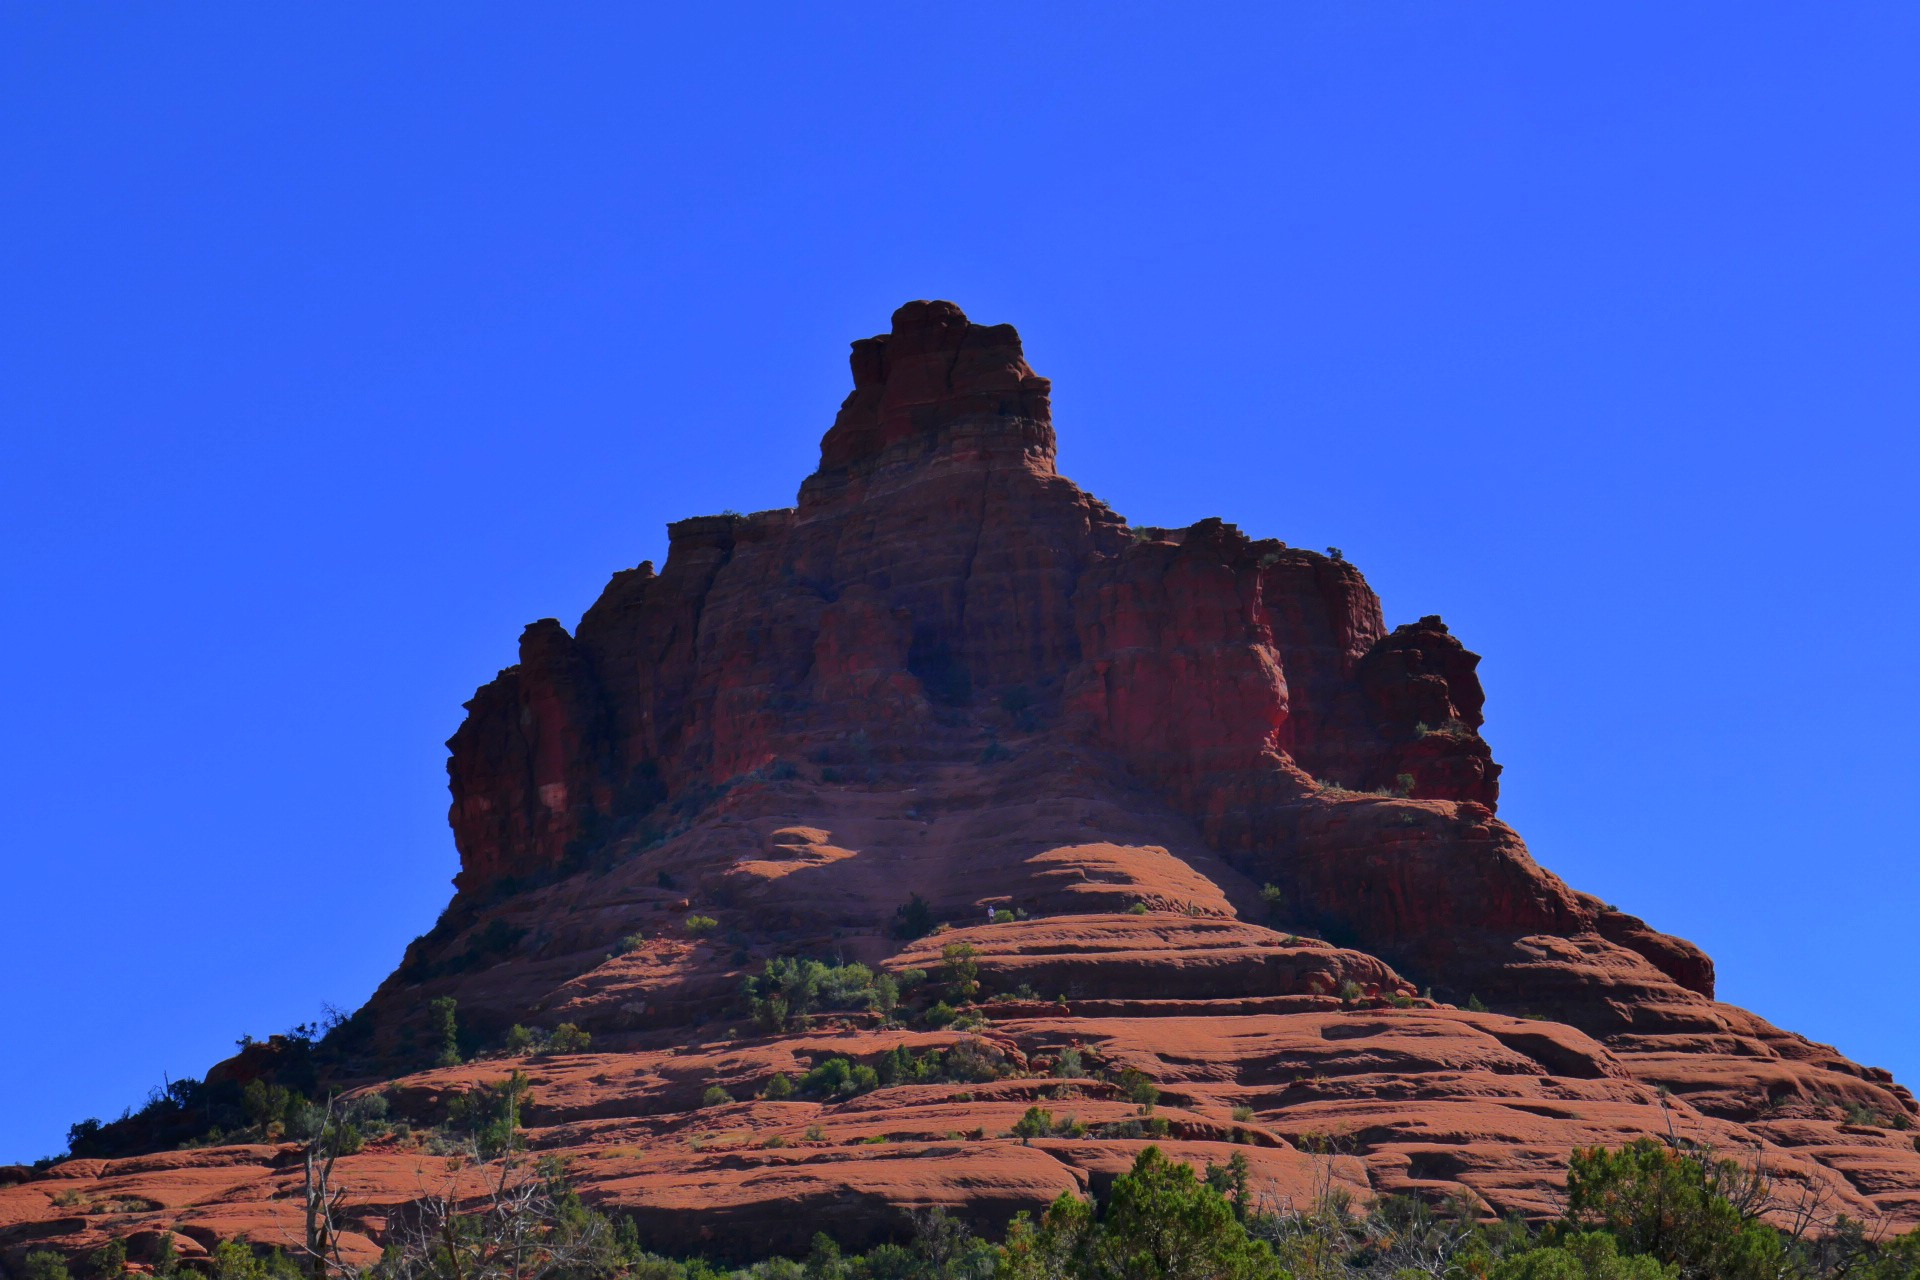 La cloche des red rock sedona